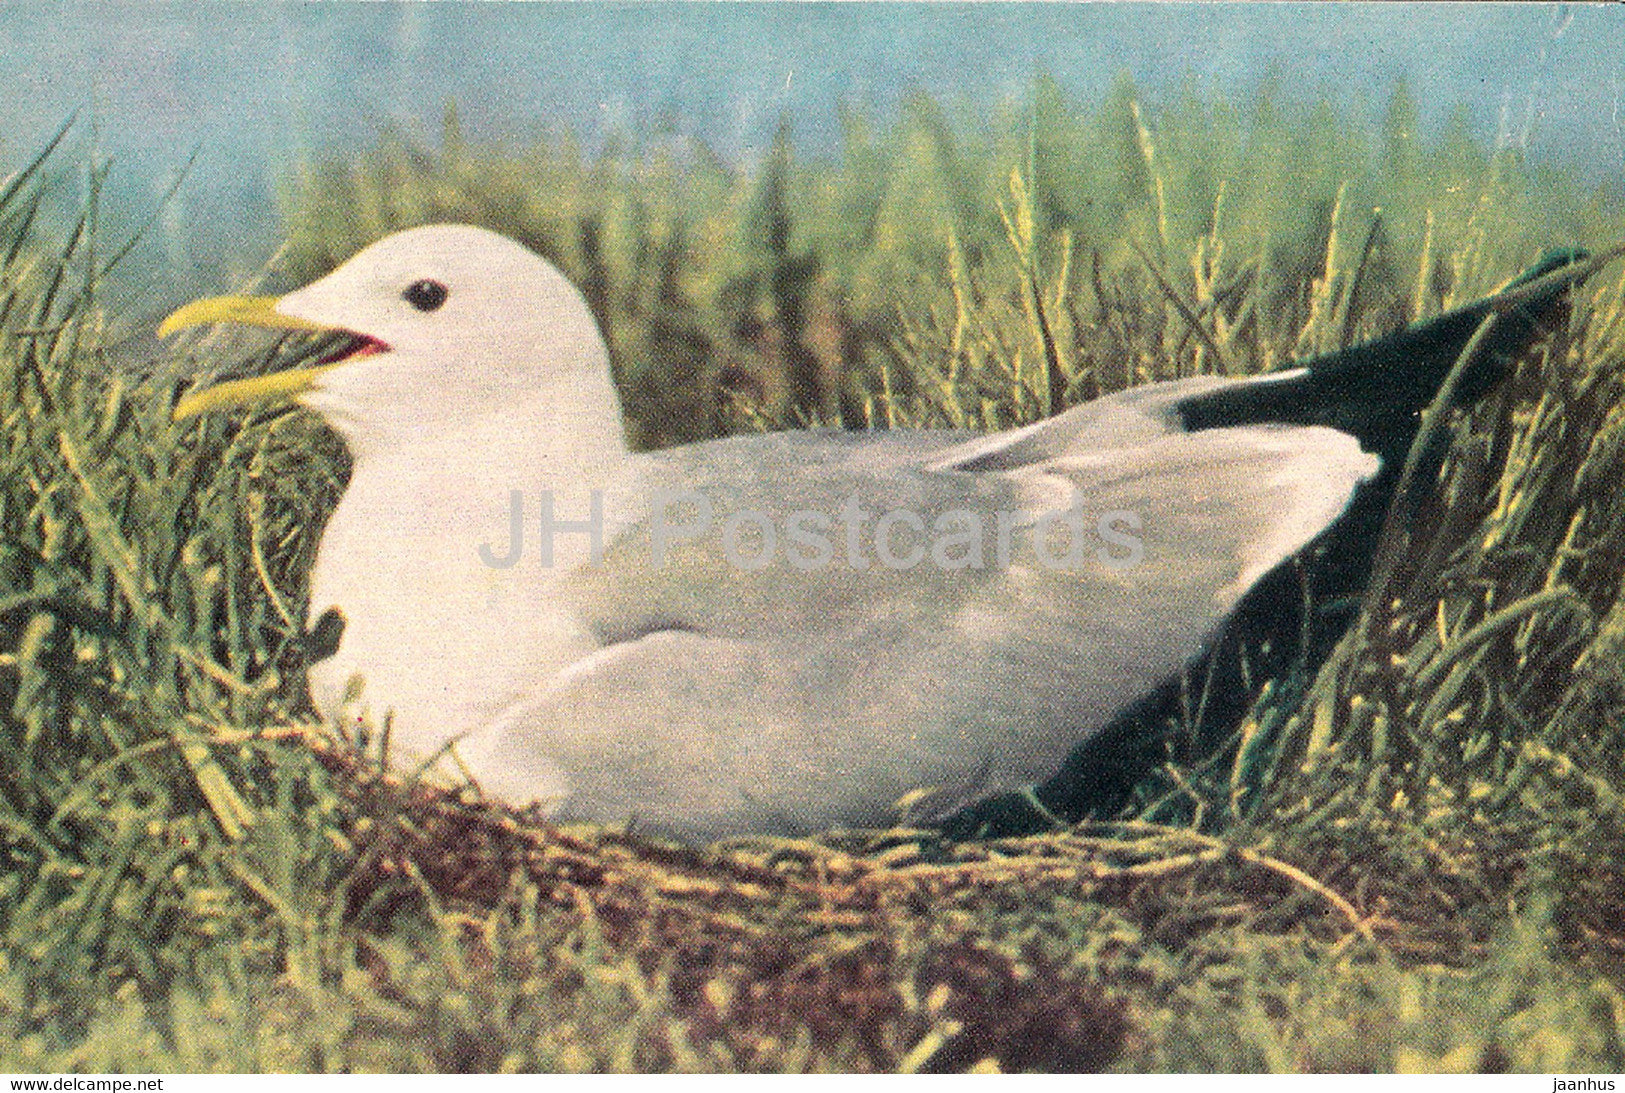 Common gull - Larus canus - birds - 1968 - Russia USSR - unused - JH Postcards